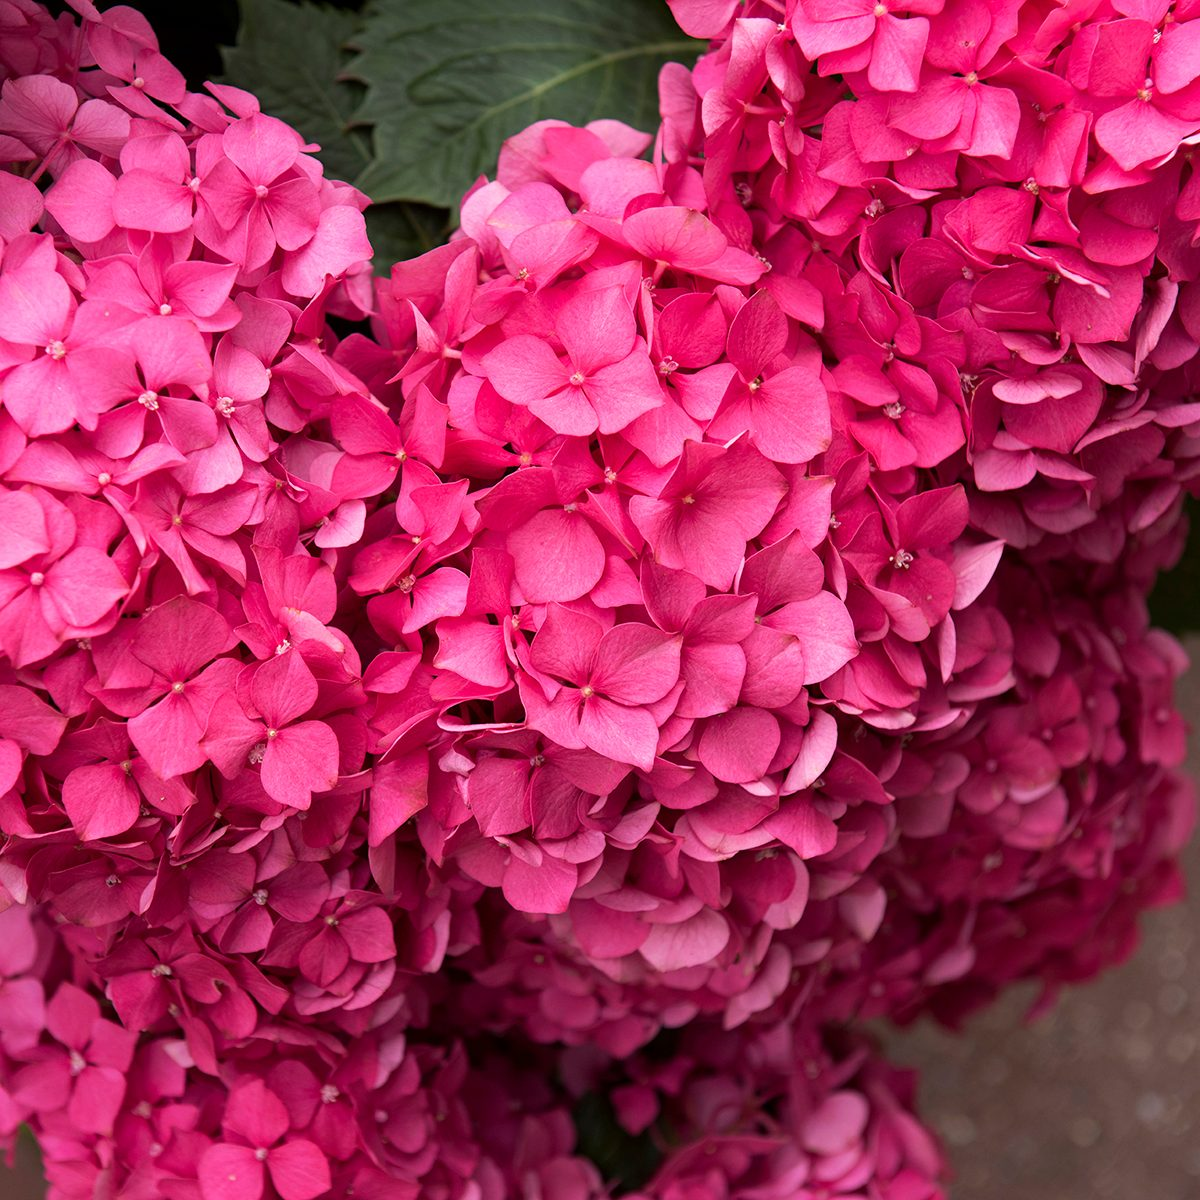 Close-up of pink colored hortensia flower at Cherbourg, Normandy region, Manche department, North-west France